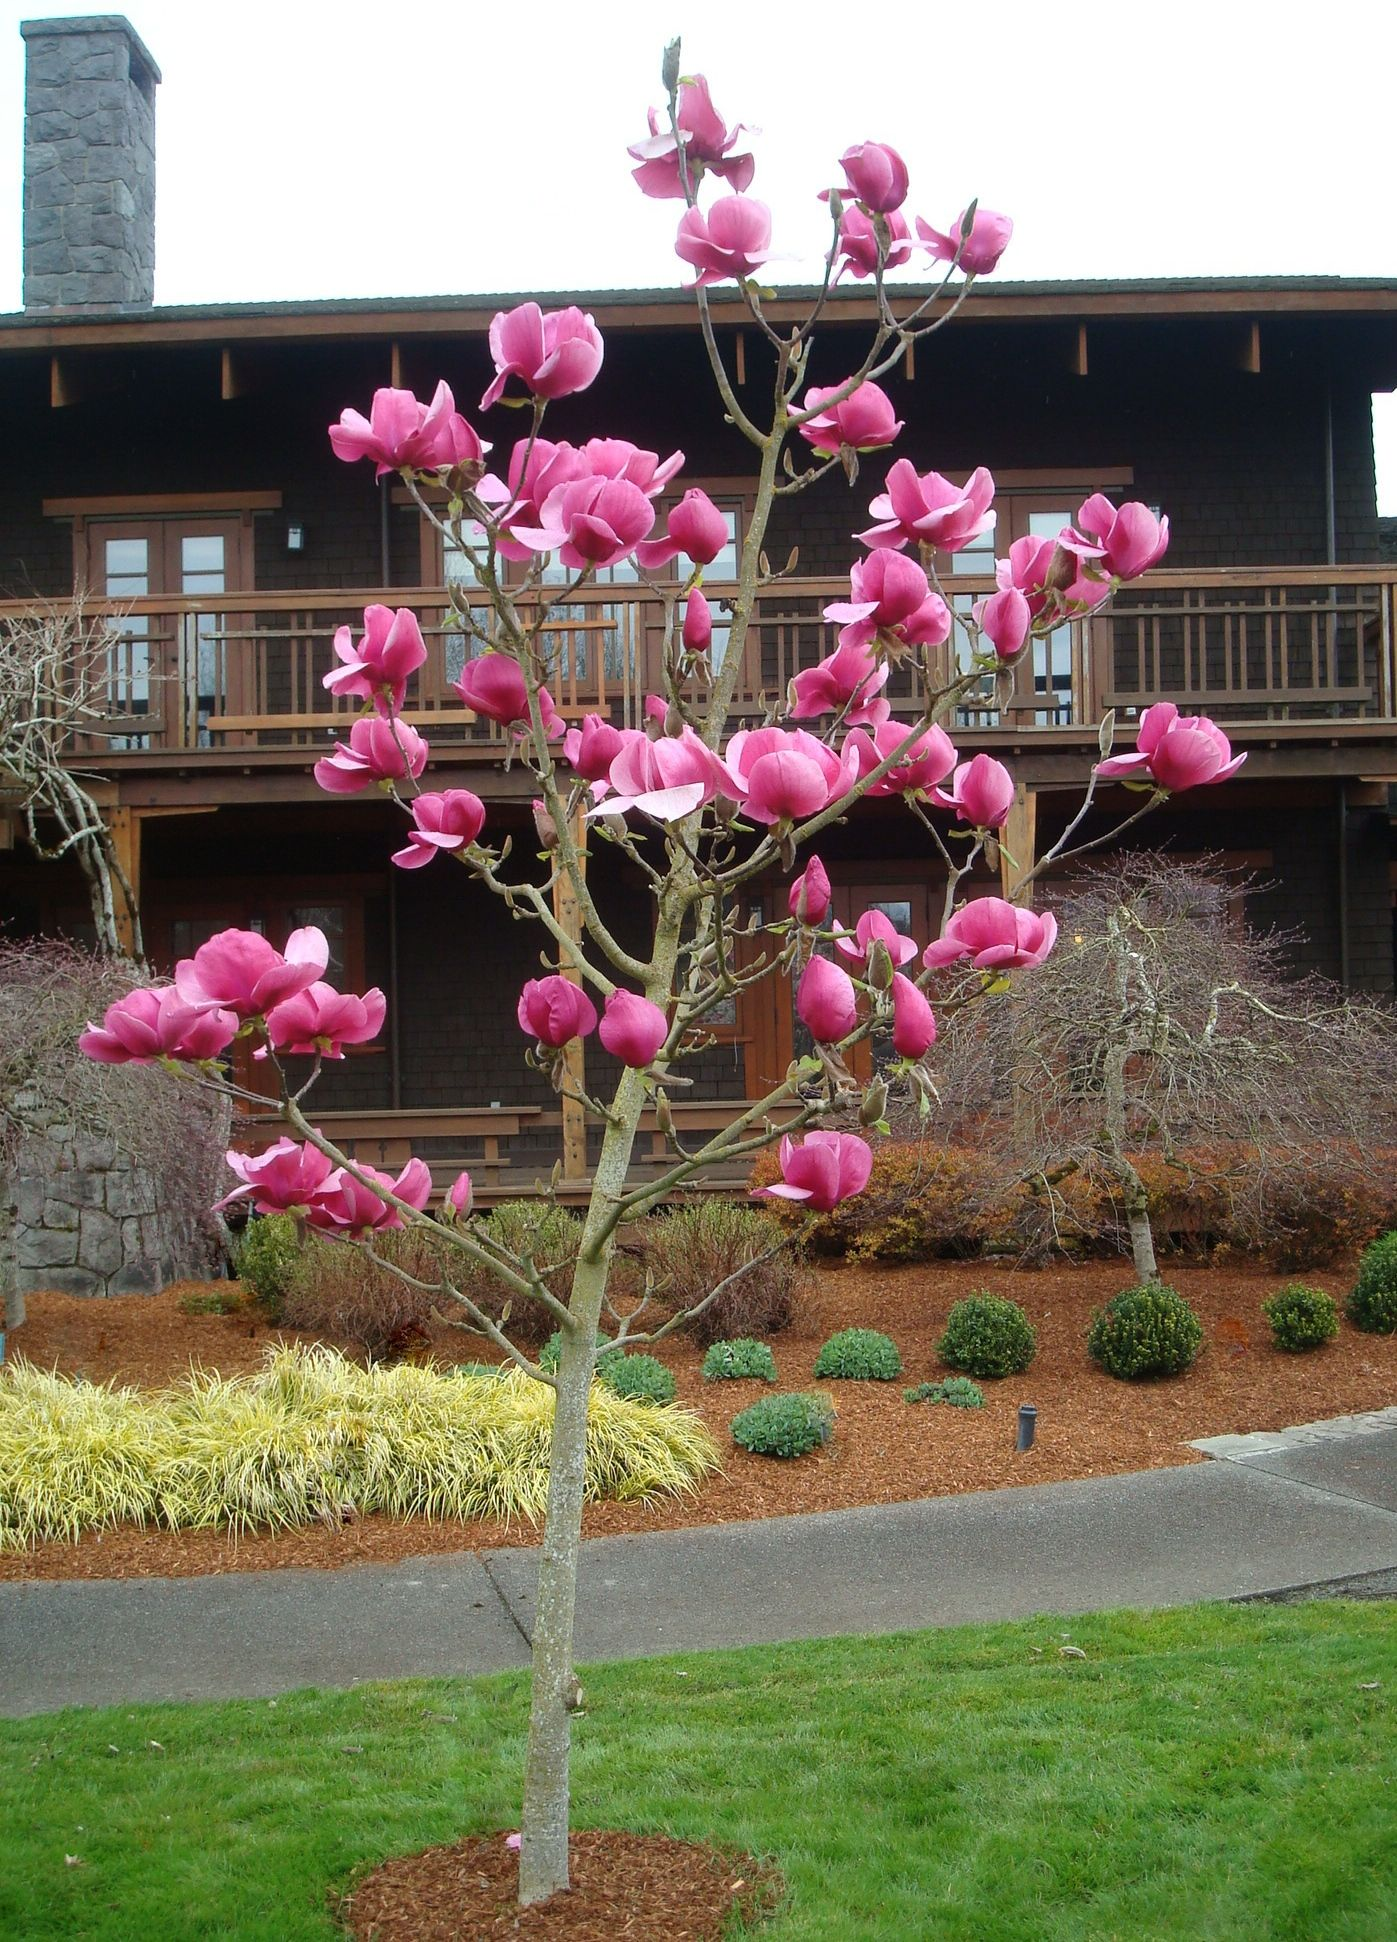 Magnificent 12 Inch Highly Fragrant Hot Pink Flowers On Felix Jury Magnolia Add Exceptional Beauty To The Early S Japanese Zen Garden Magnolia Monrovia Plants